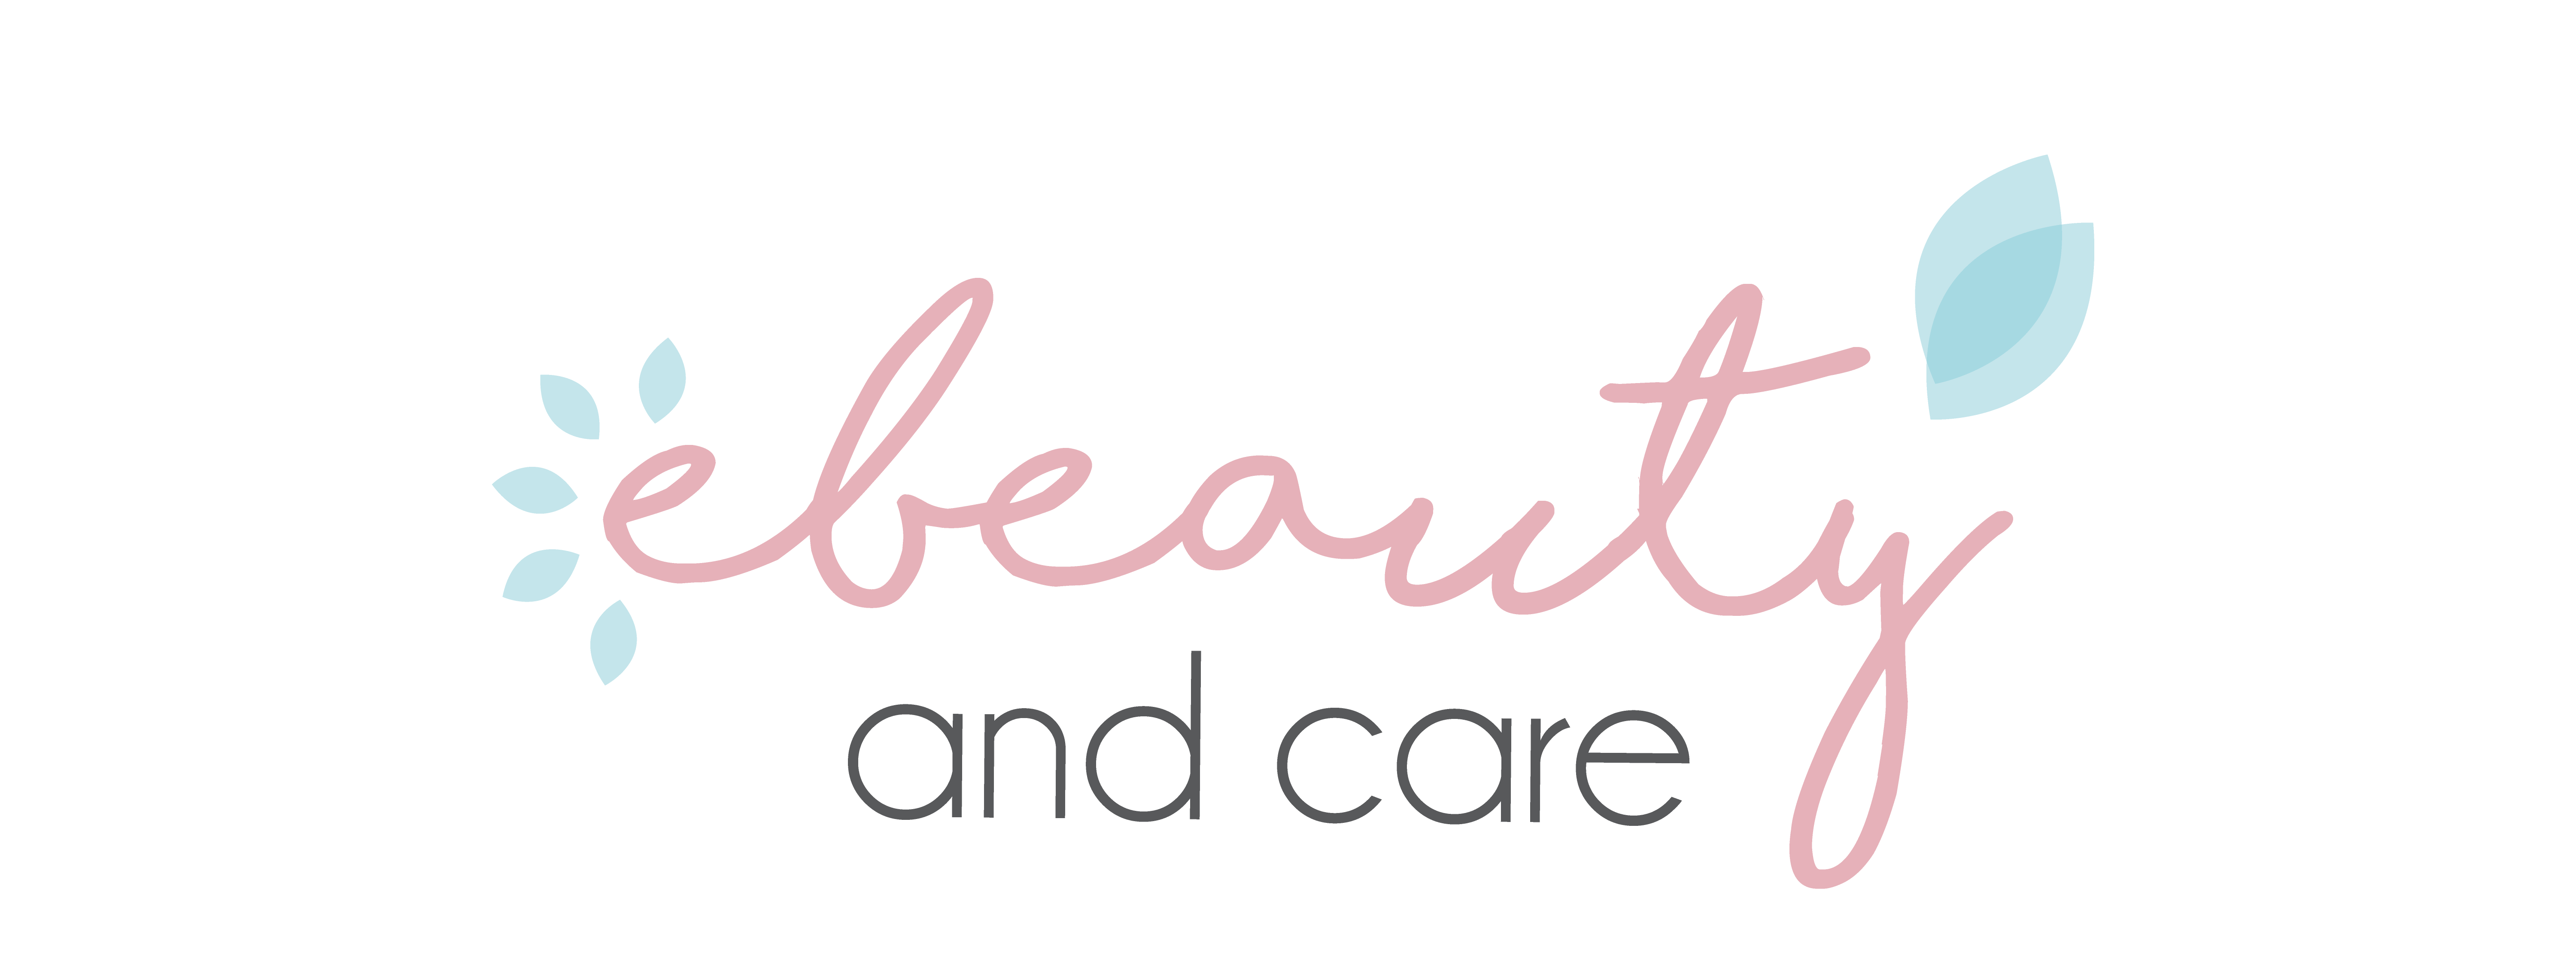 eBeauty and Care